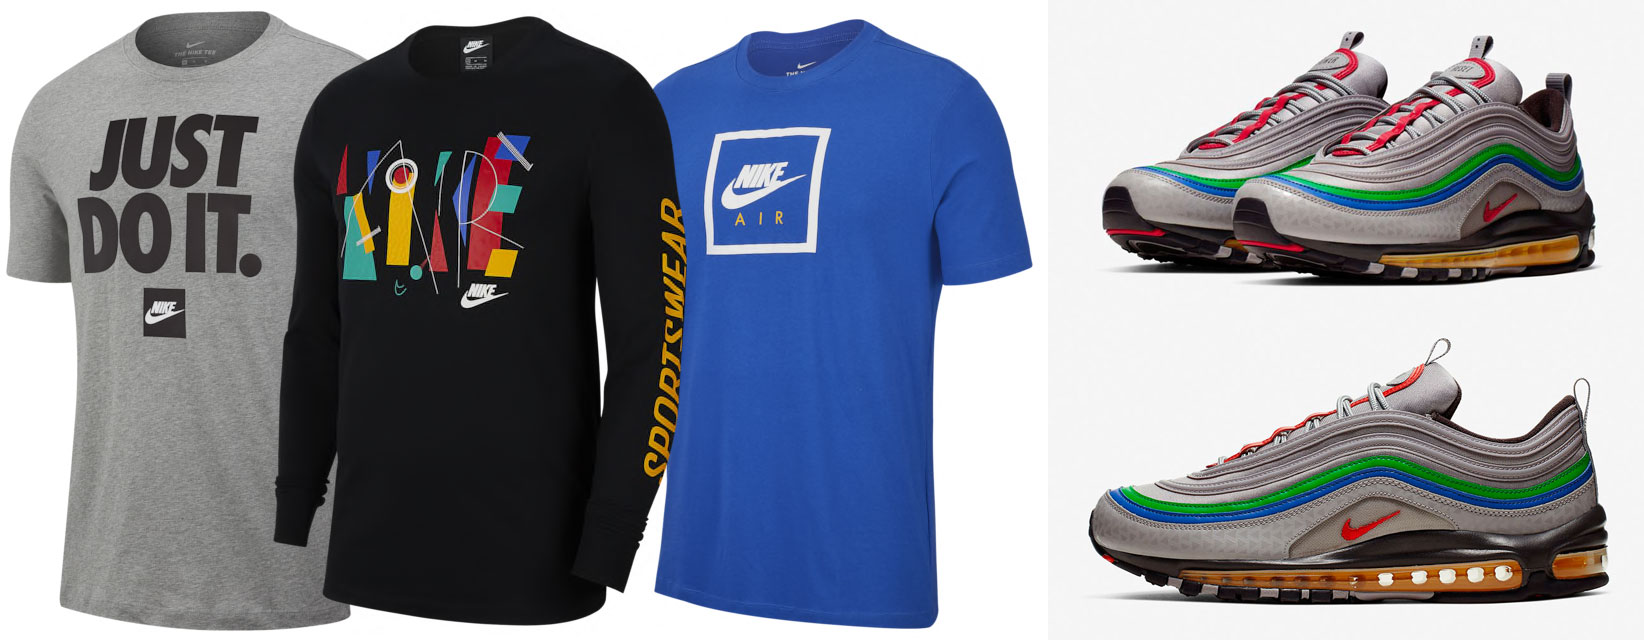 nike-air-max-97-nintendo-64-shirts